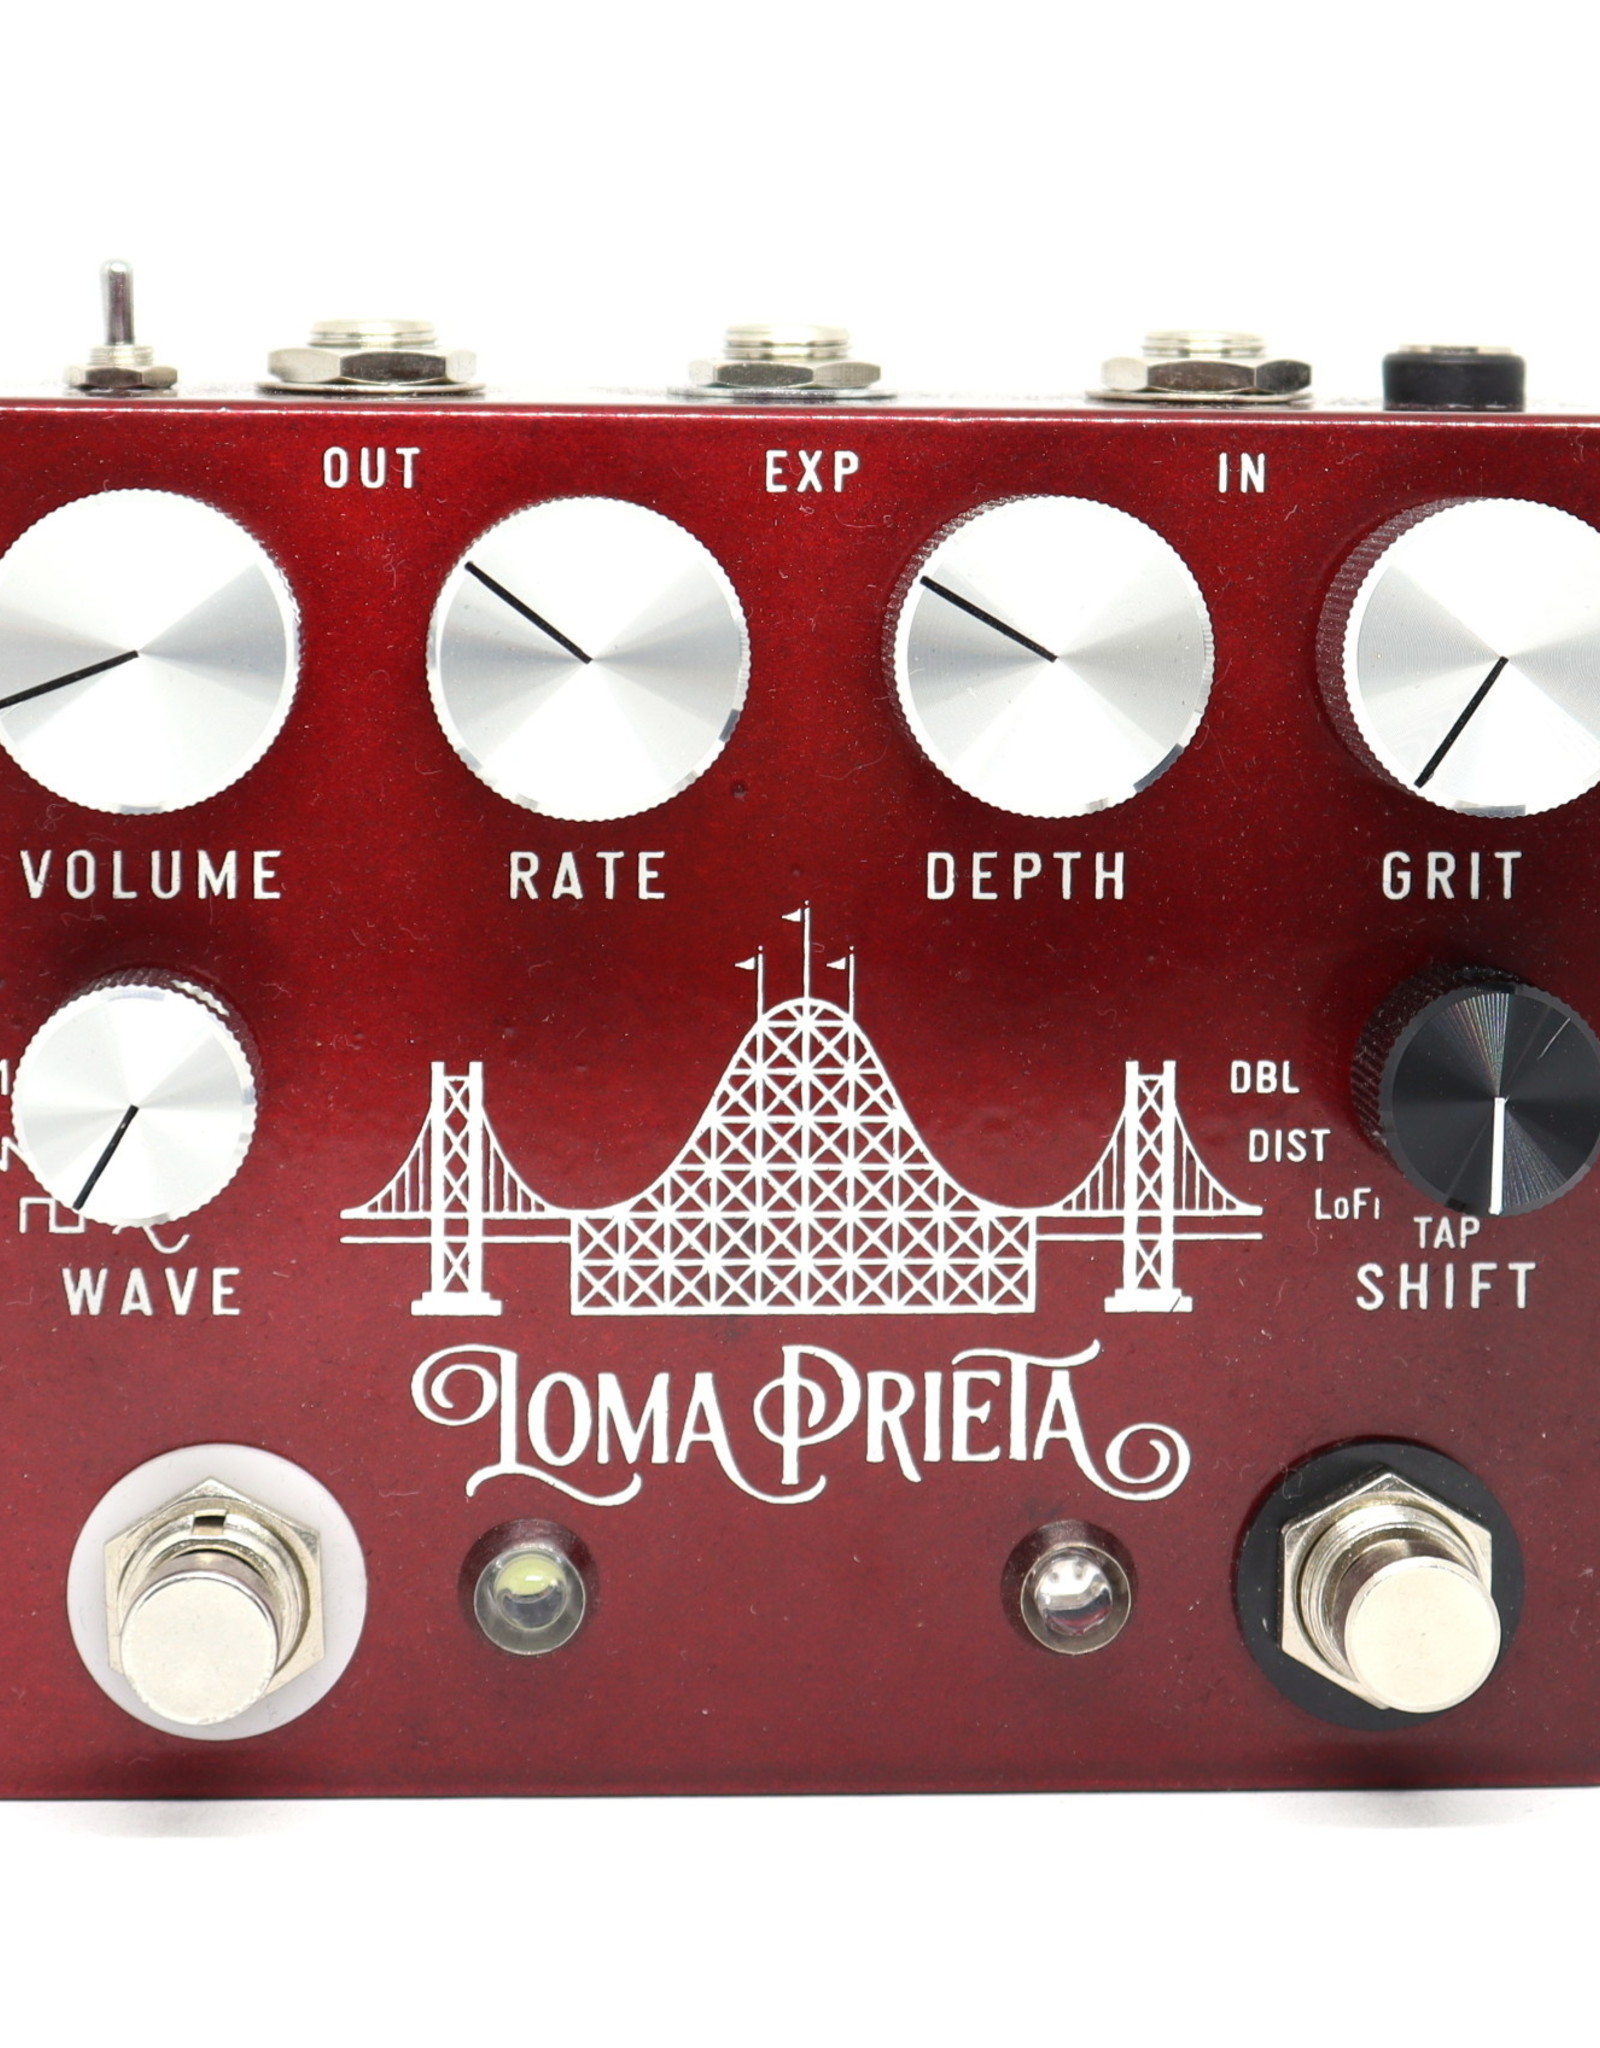 CopperSound Pedals CopperSound Pedals Loma Prieta Gritty Harmonic Tremolo